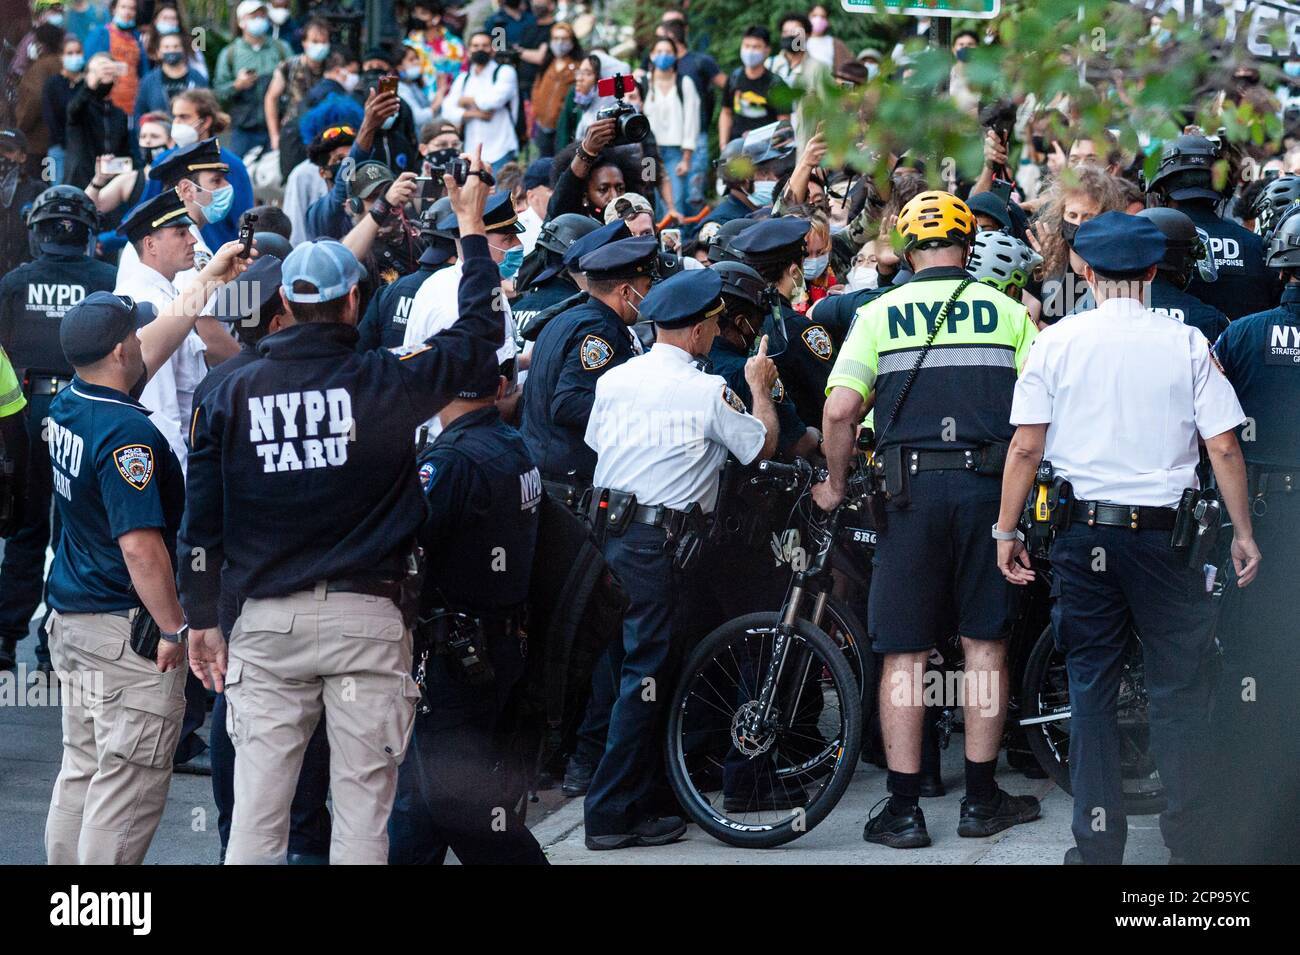 Protestors are arrested by NYPD offiicers during a demonstration against Immigration and Customs Enforcement in New York City on September 18, 20202. For a third day in a row, protestors demonstrated against alleged accusations that a physician perfomed medically unnecessary hysterectomies on undocumented women in I.C.E. custody. (Photo by Gabriele Holtermann/Sipa USA) Credit: Sipa USA/Alamy Live News Stock Photo